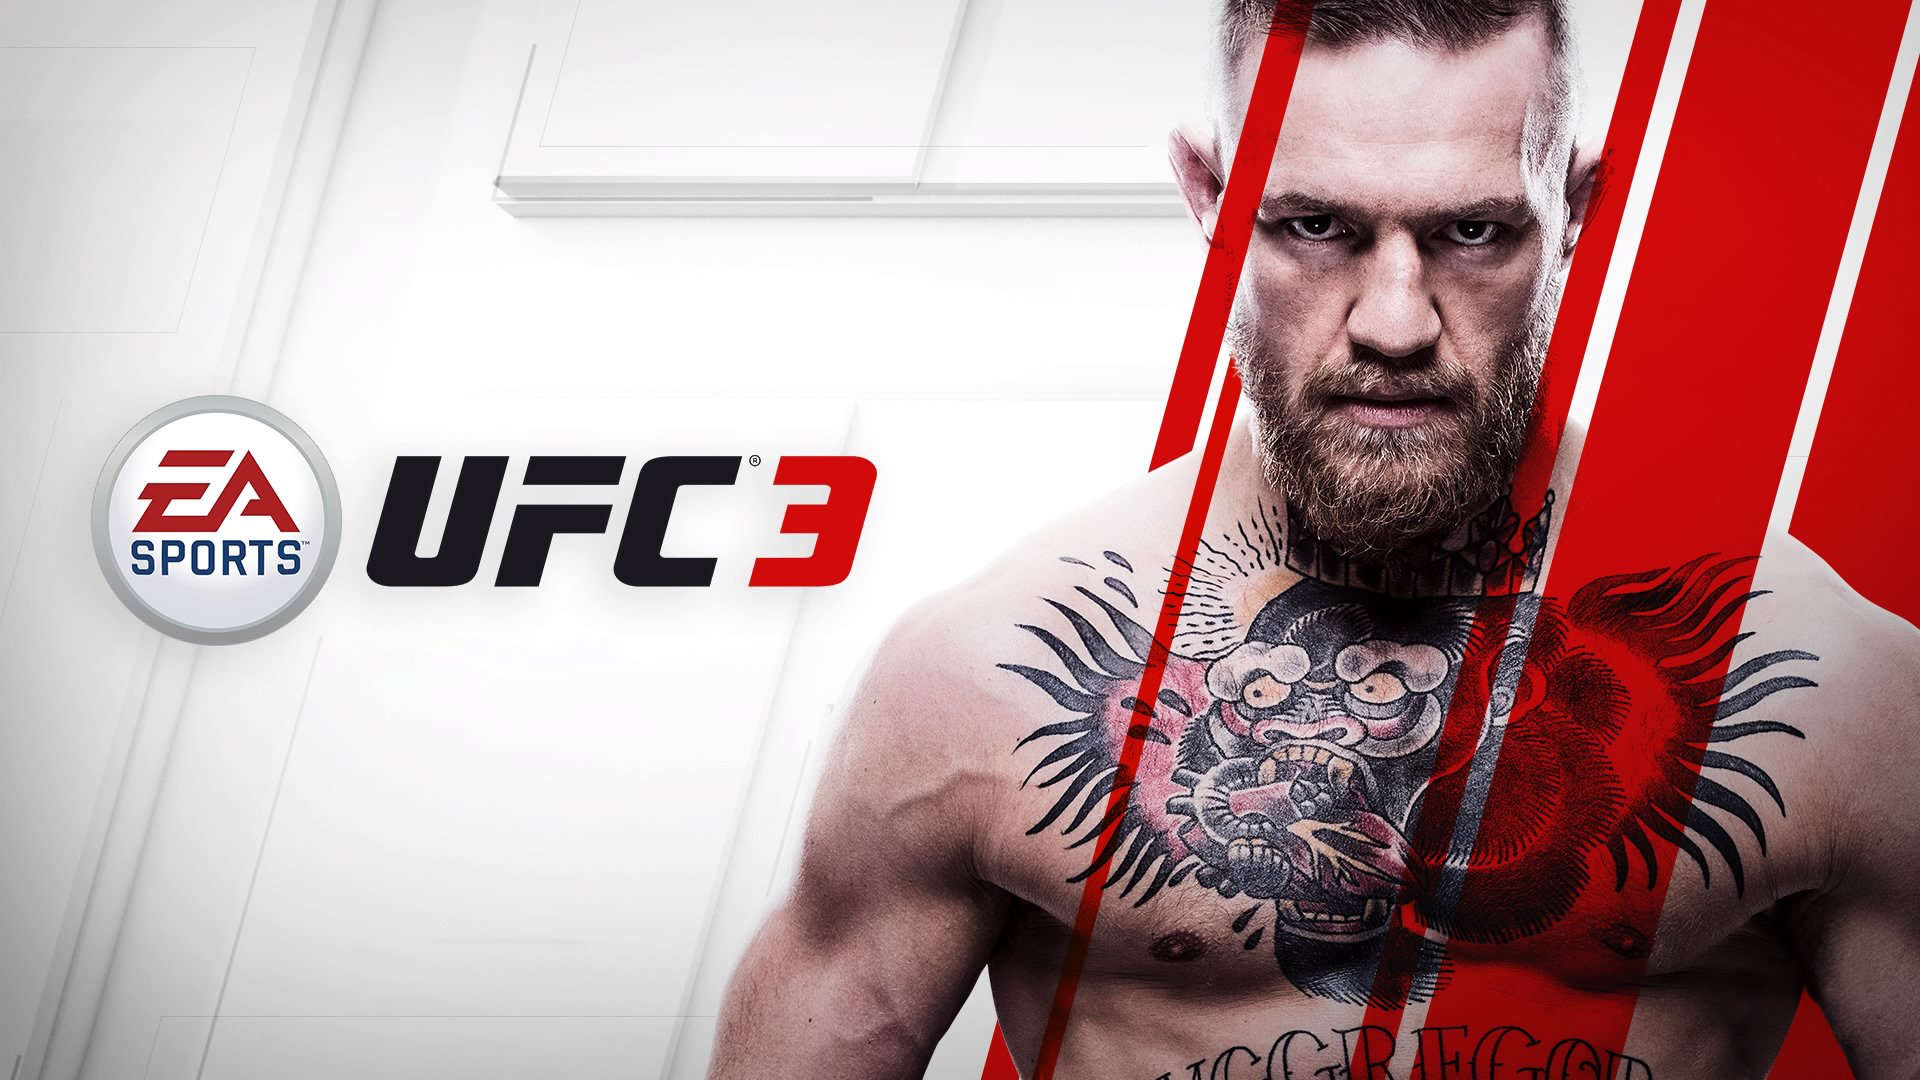 4 Ea Sports Ufc 3 Hd Wallpapers Background Images Wallpaper Abyss